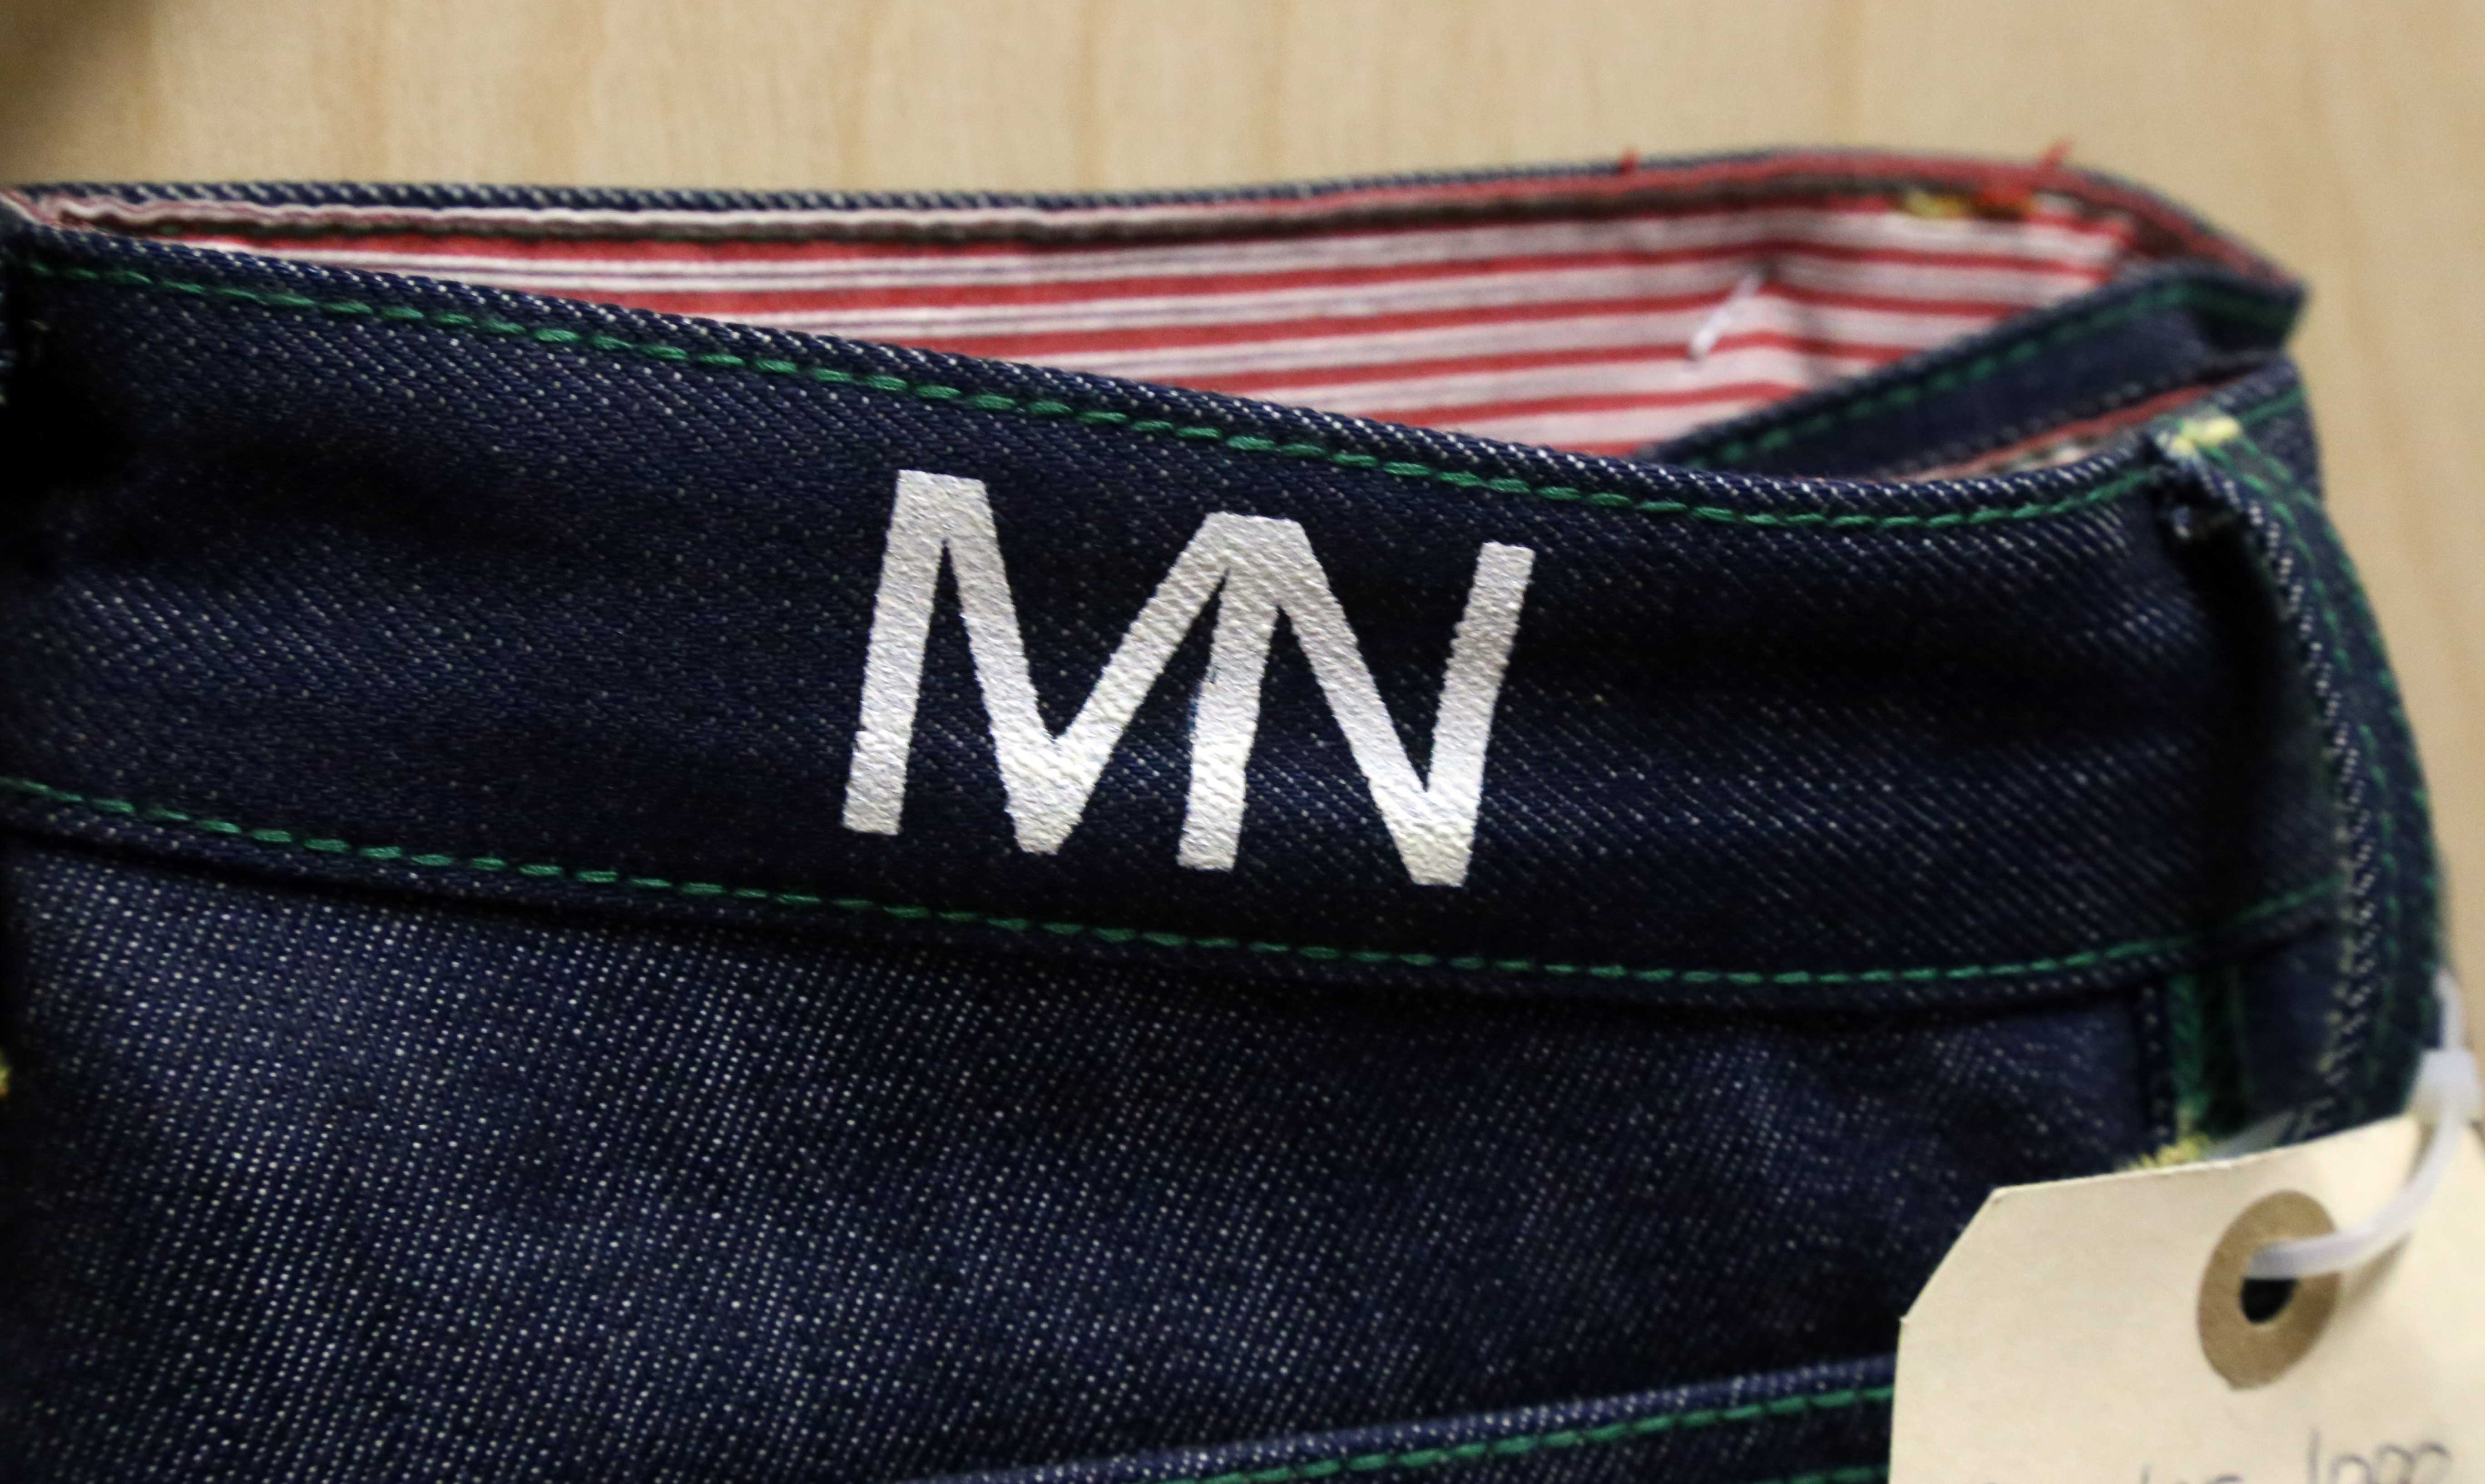 MarcNelson logo on pant